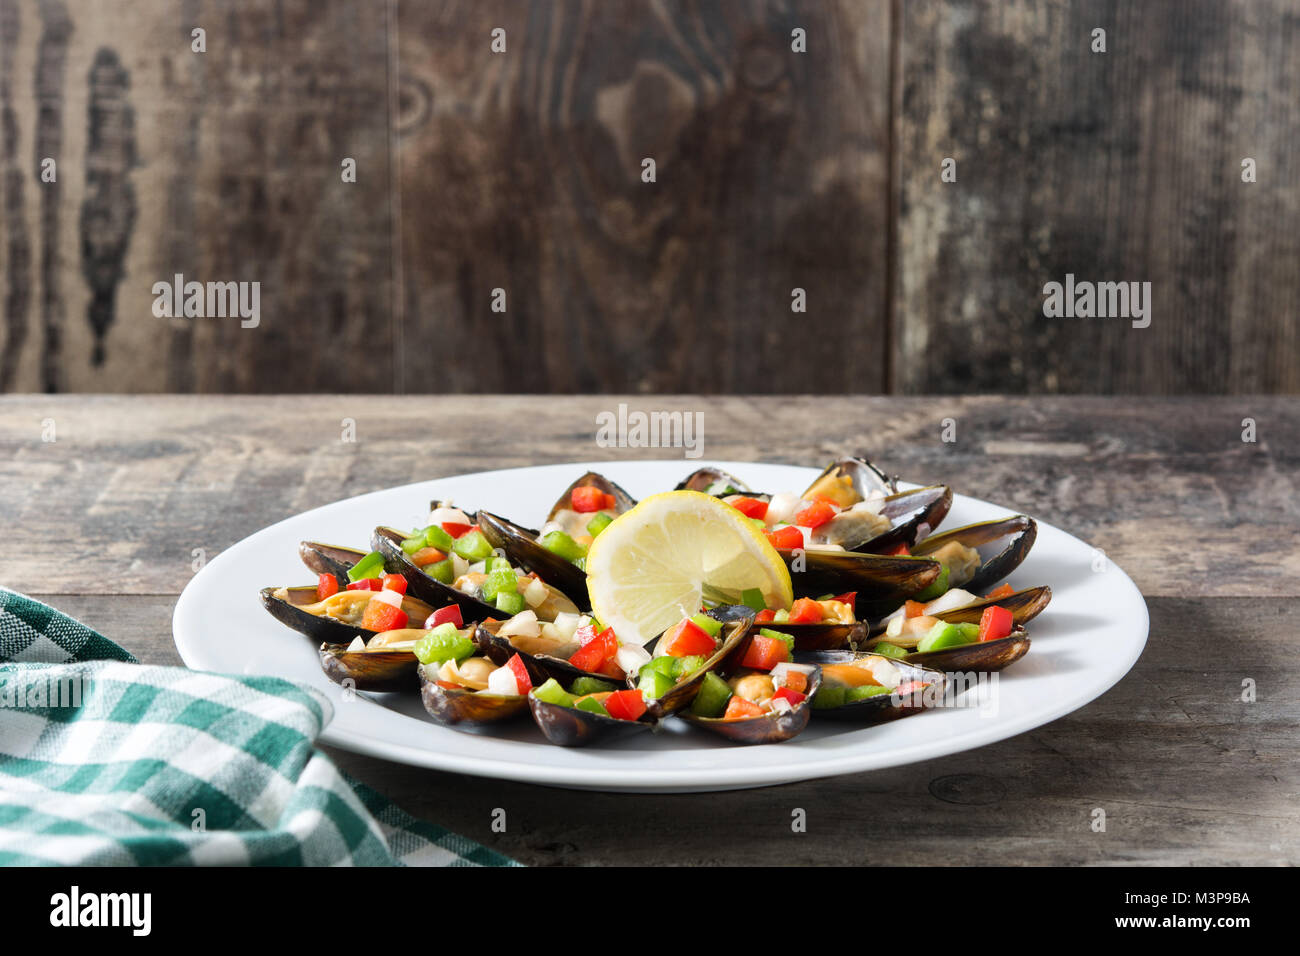 Steamed mussels with peppers and onion on wooden table - Stock Image